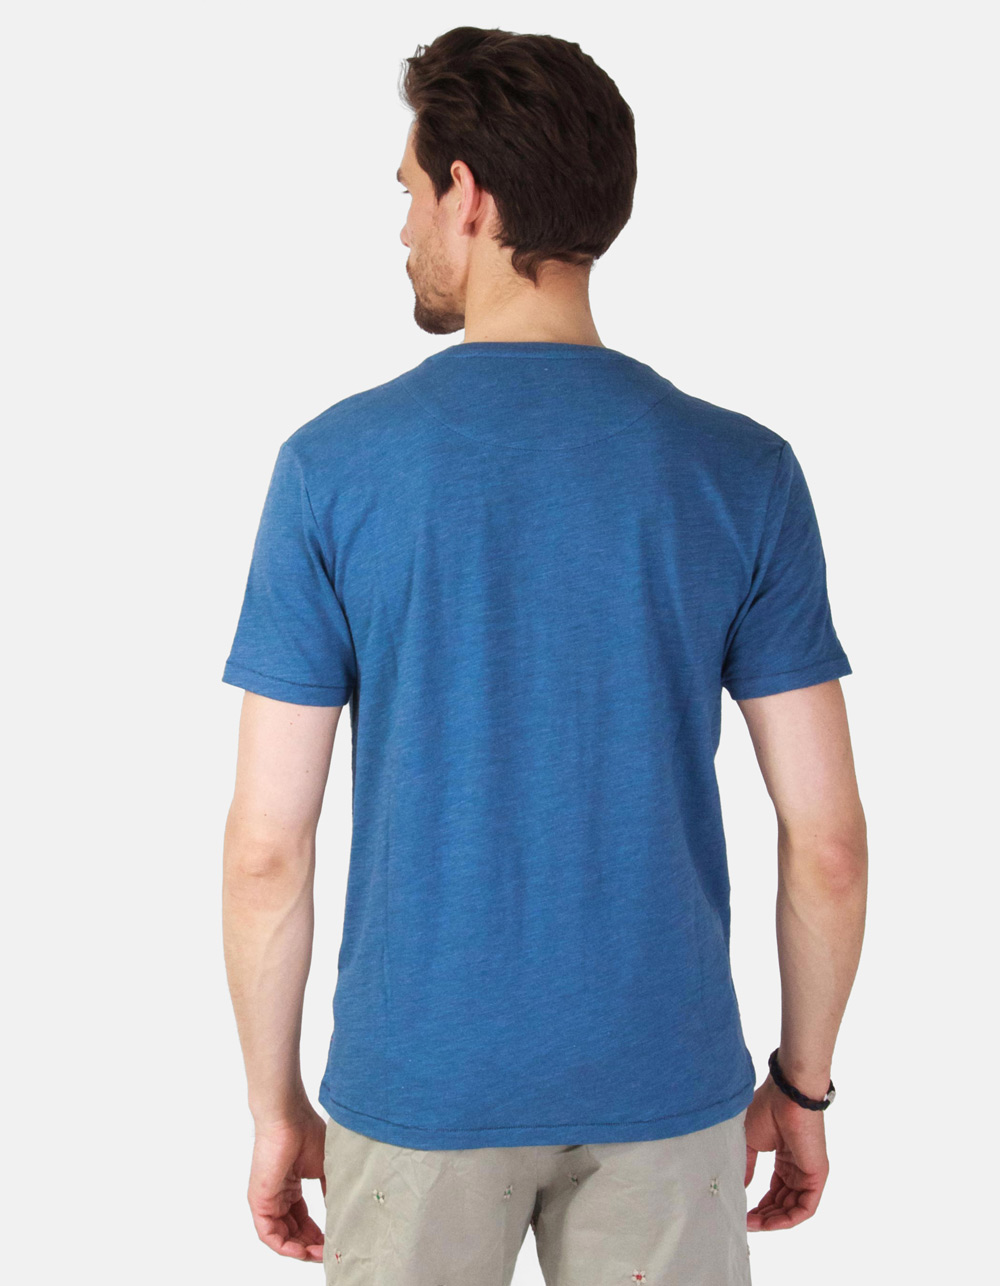 Camiseta Macson University azul - Backside